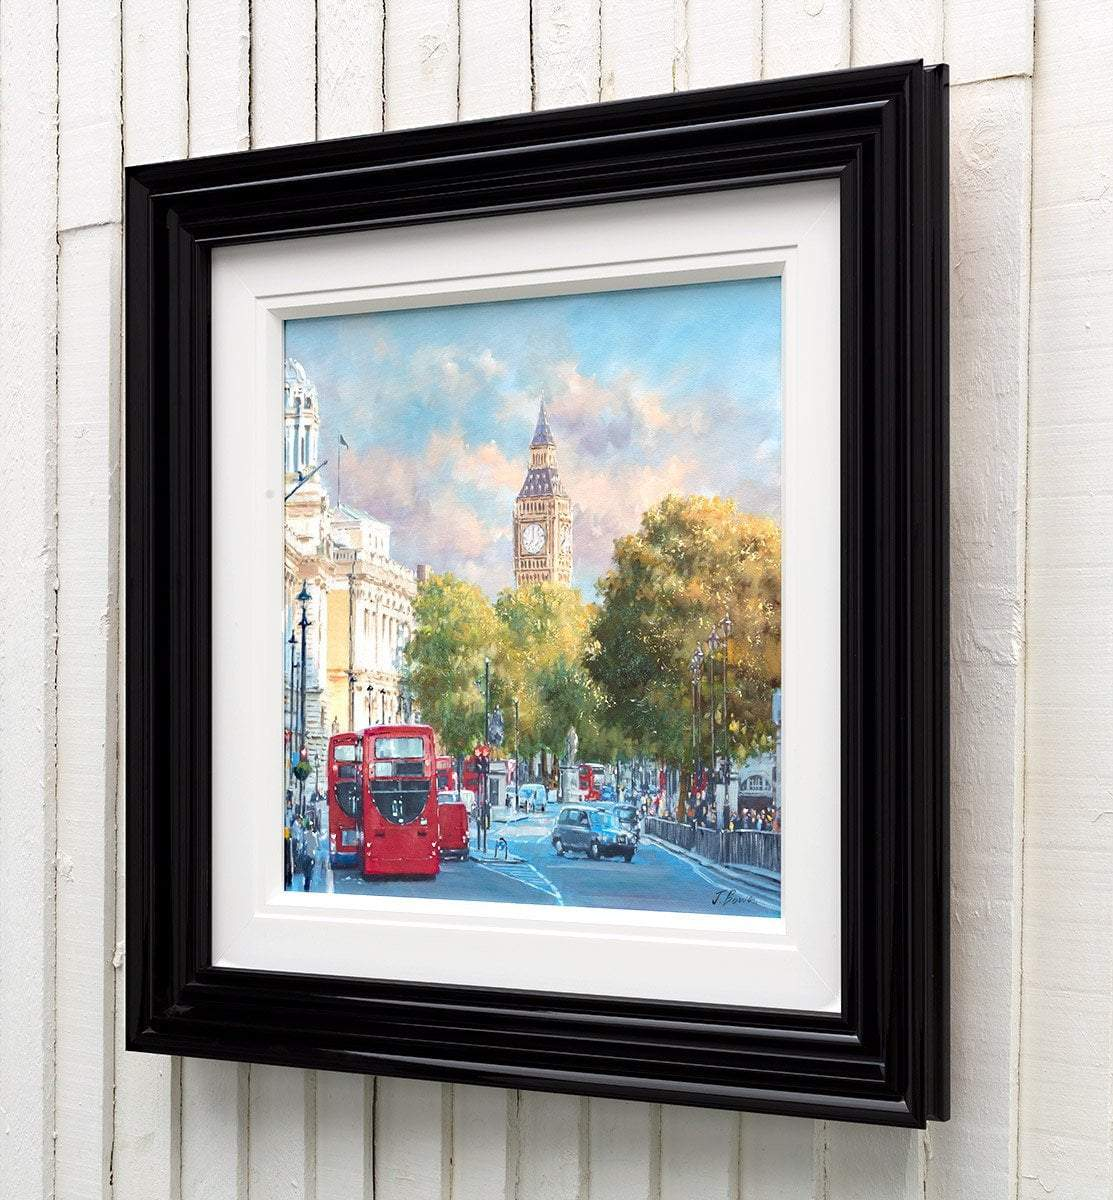 Good Morning London - Original Joe Bowen Framed